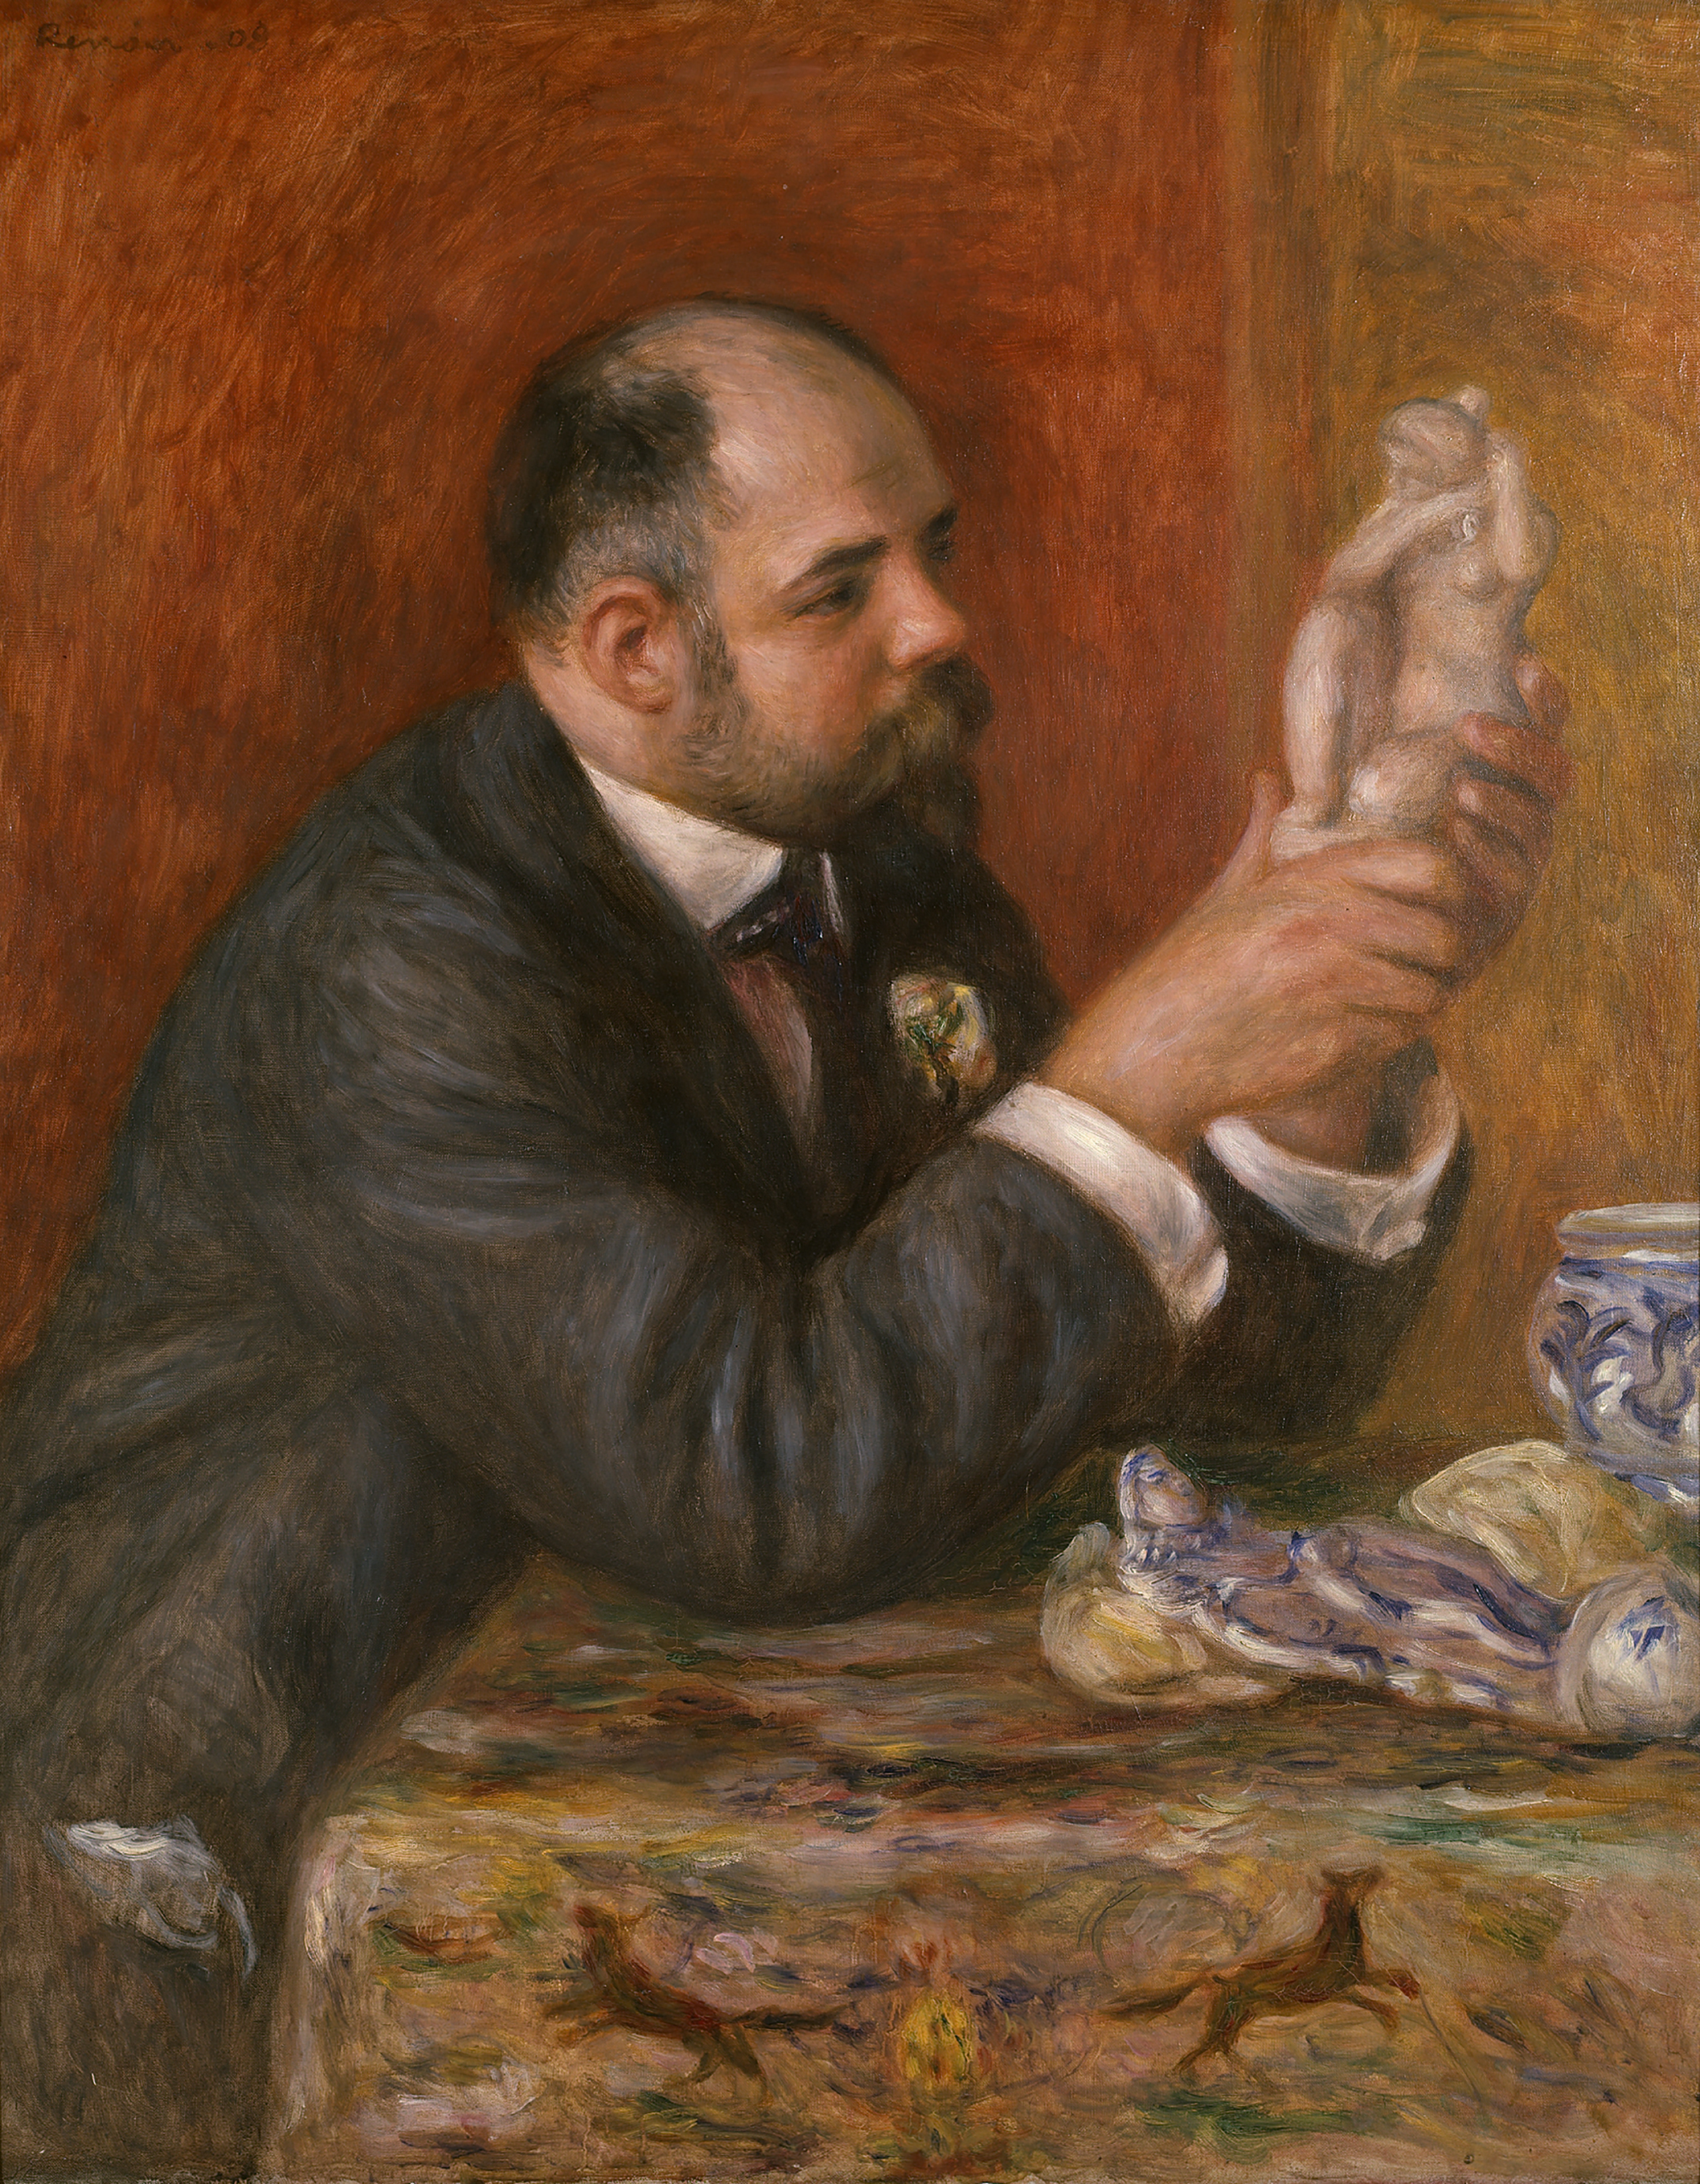 Portrait of Ambroise Vollard - Pierre-Auguste Renoir, 1908